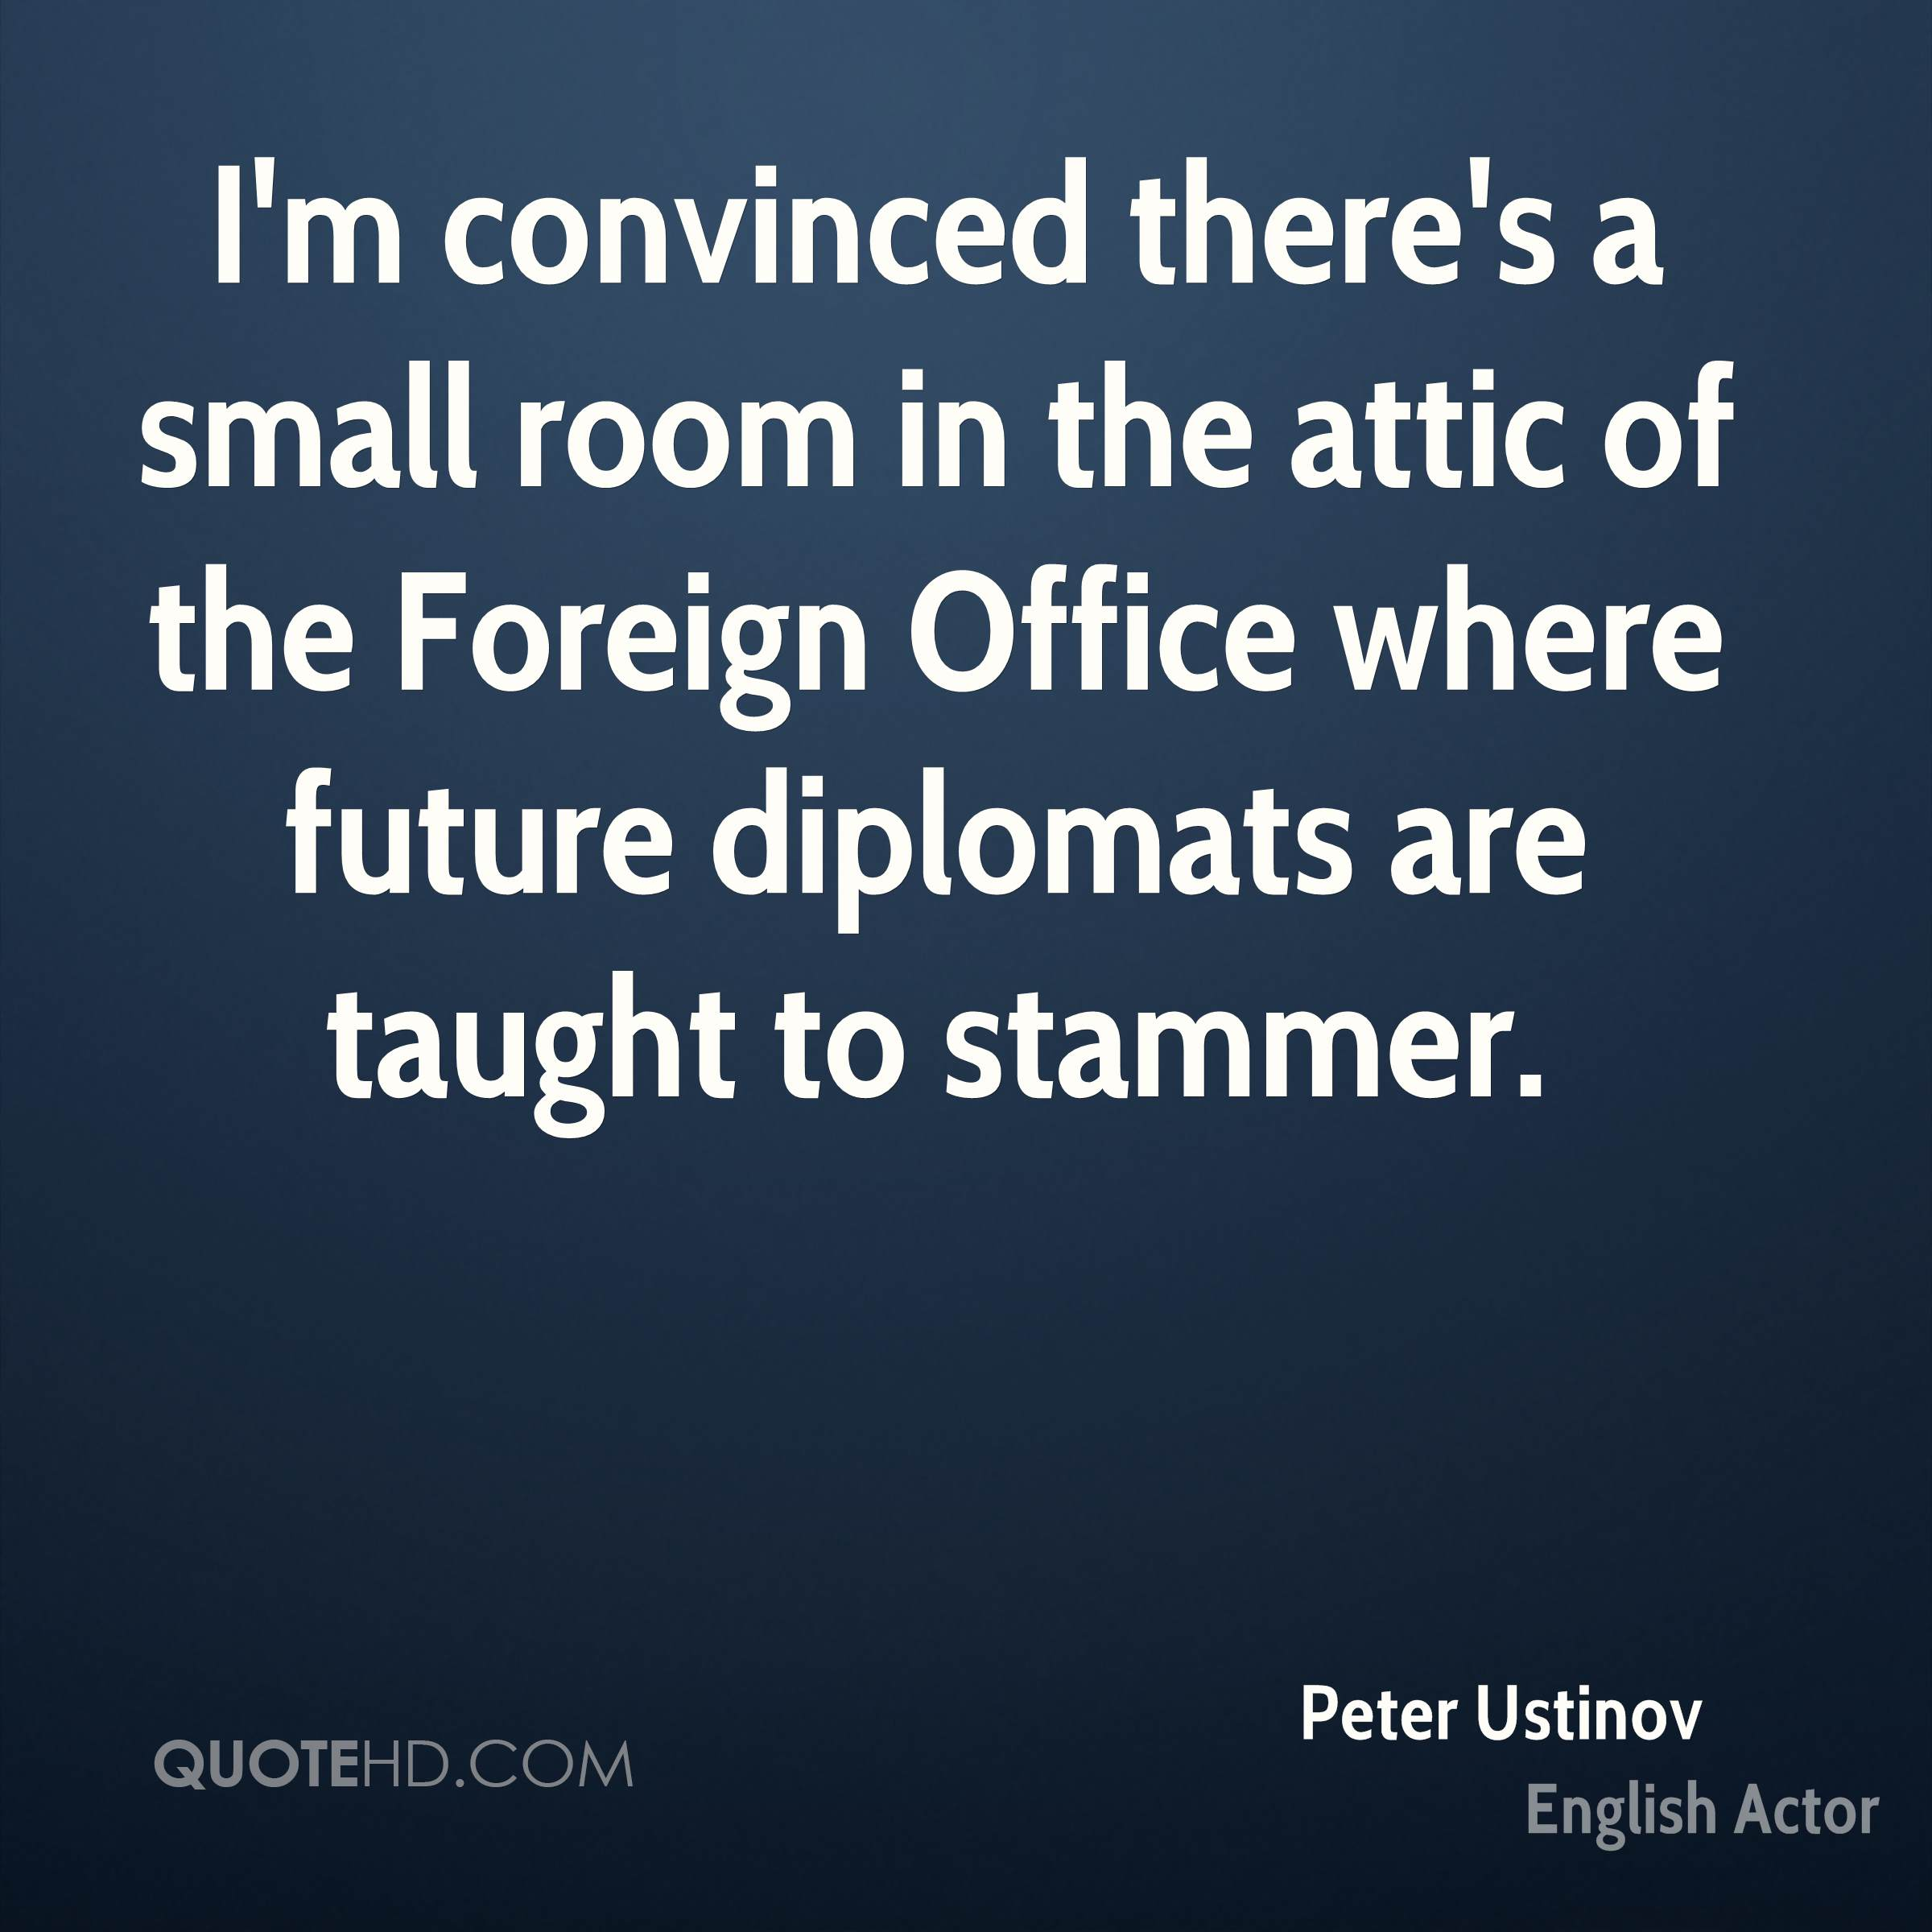 I'm convinced there's a small room in the attic of the Foreign Office where future diplomats are taught to stammer.